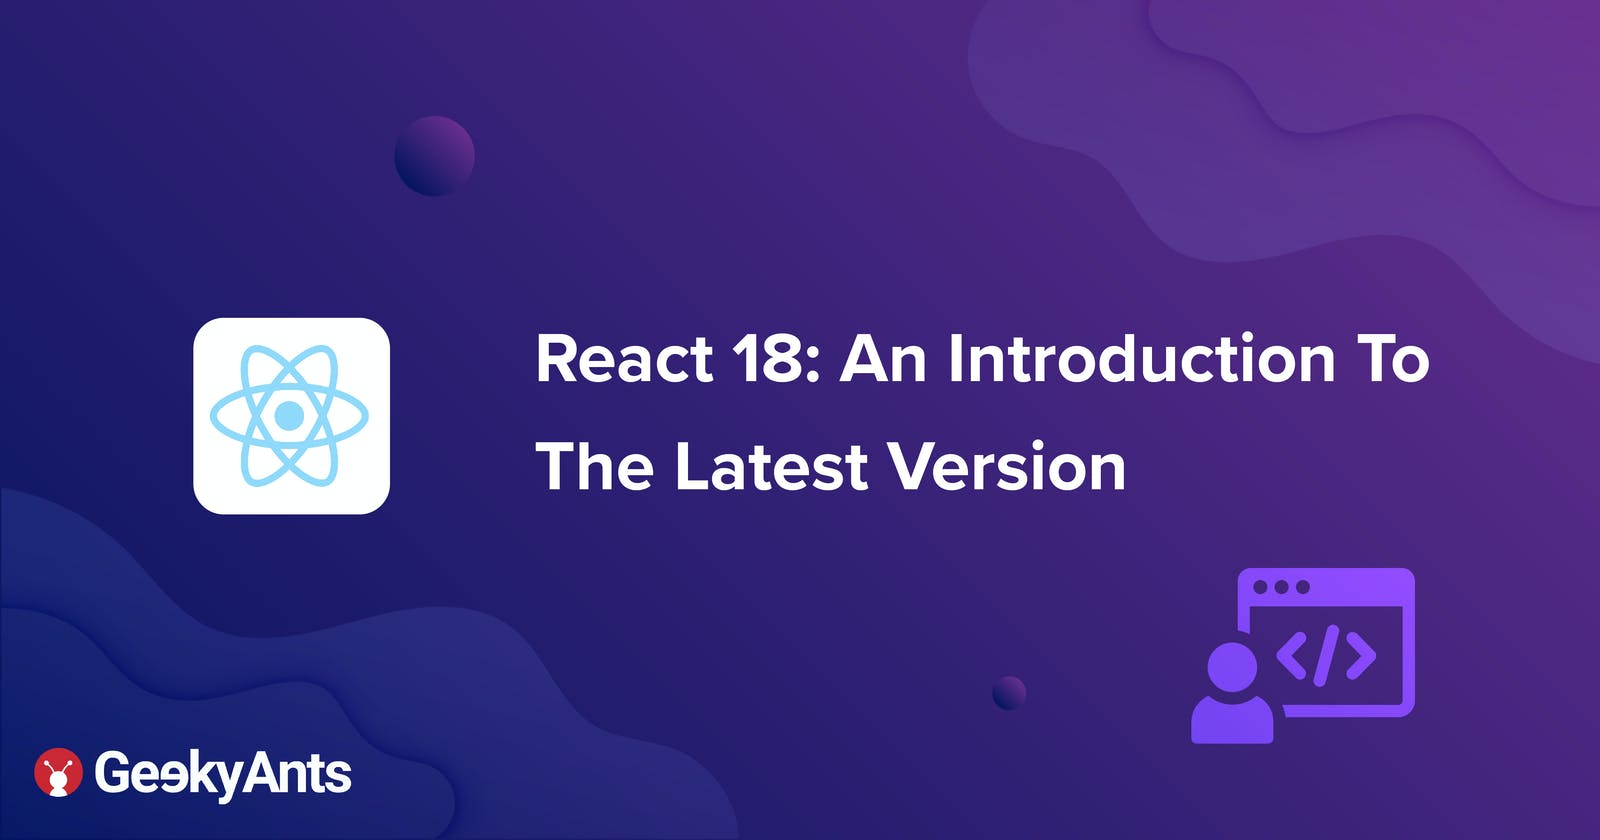 React 18: An Introduction To The Latest Version